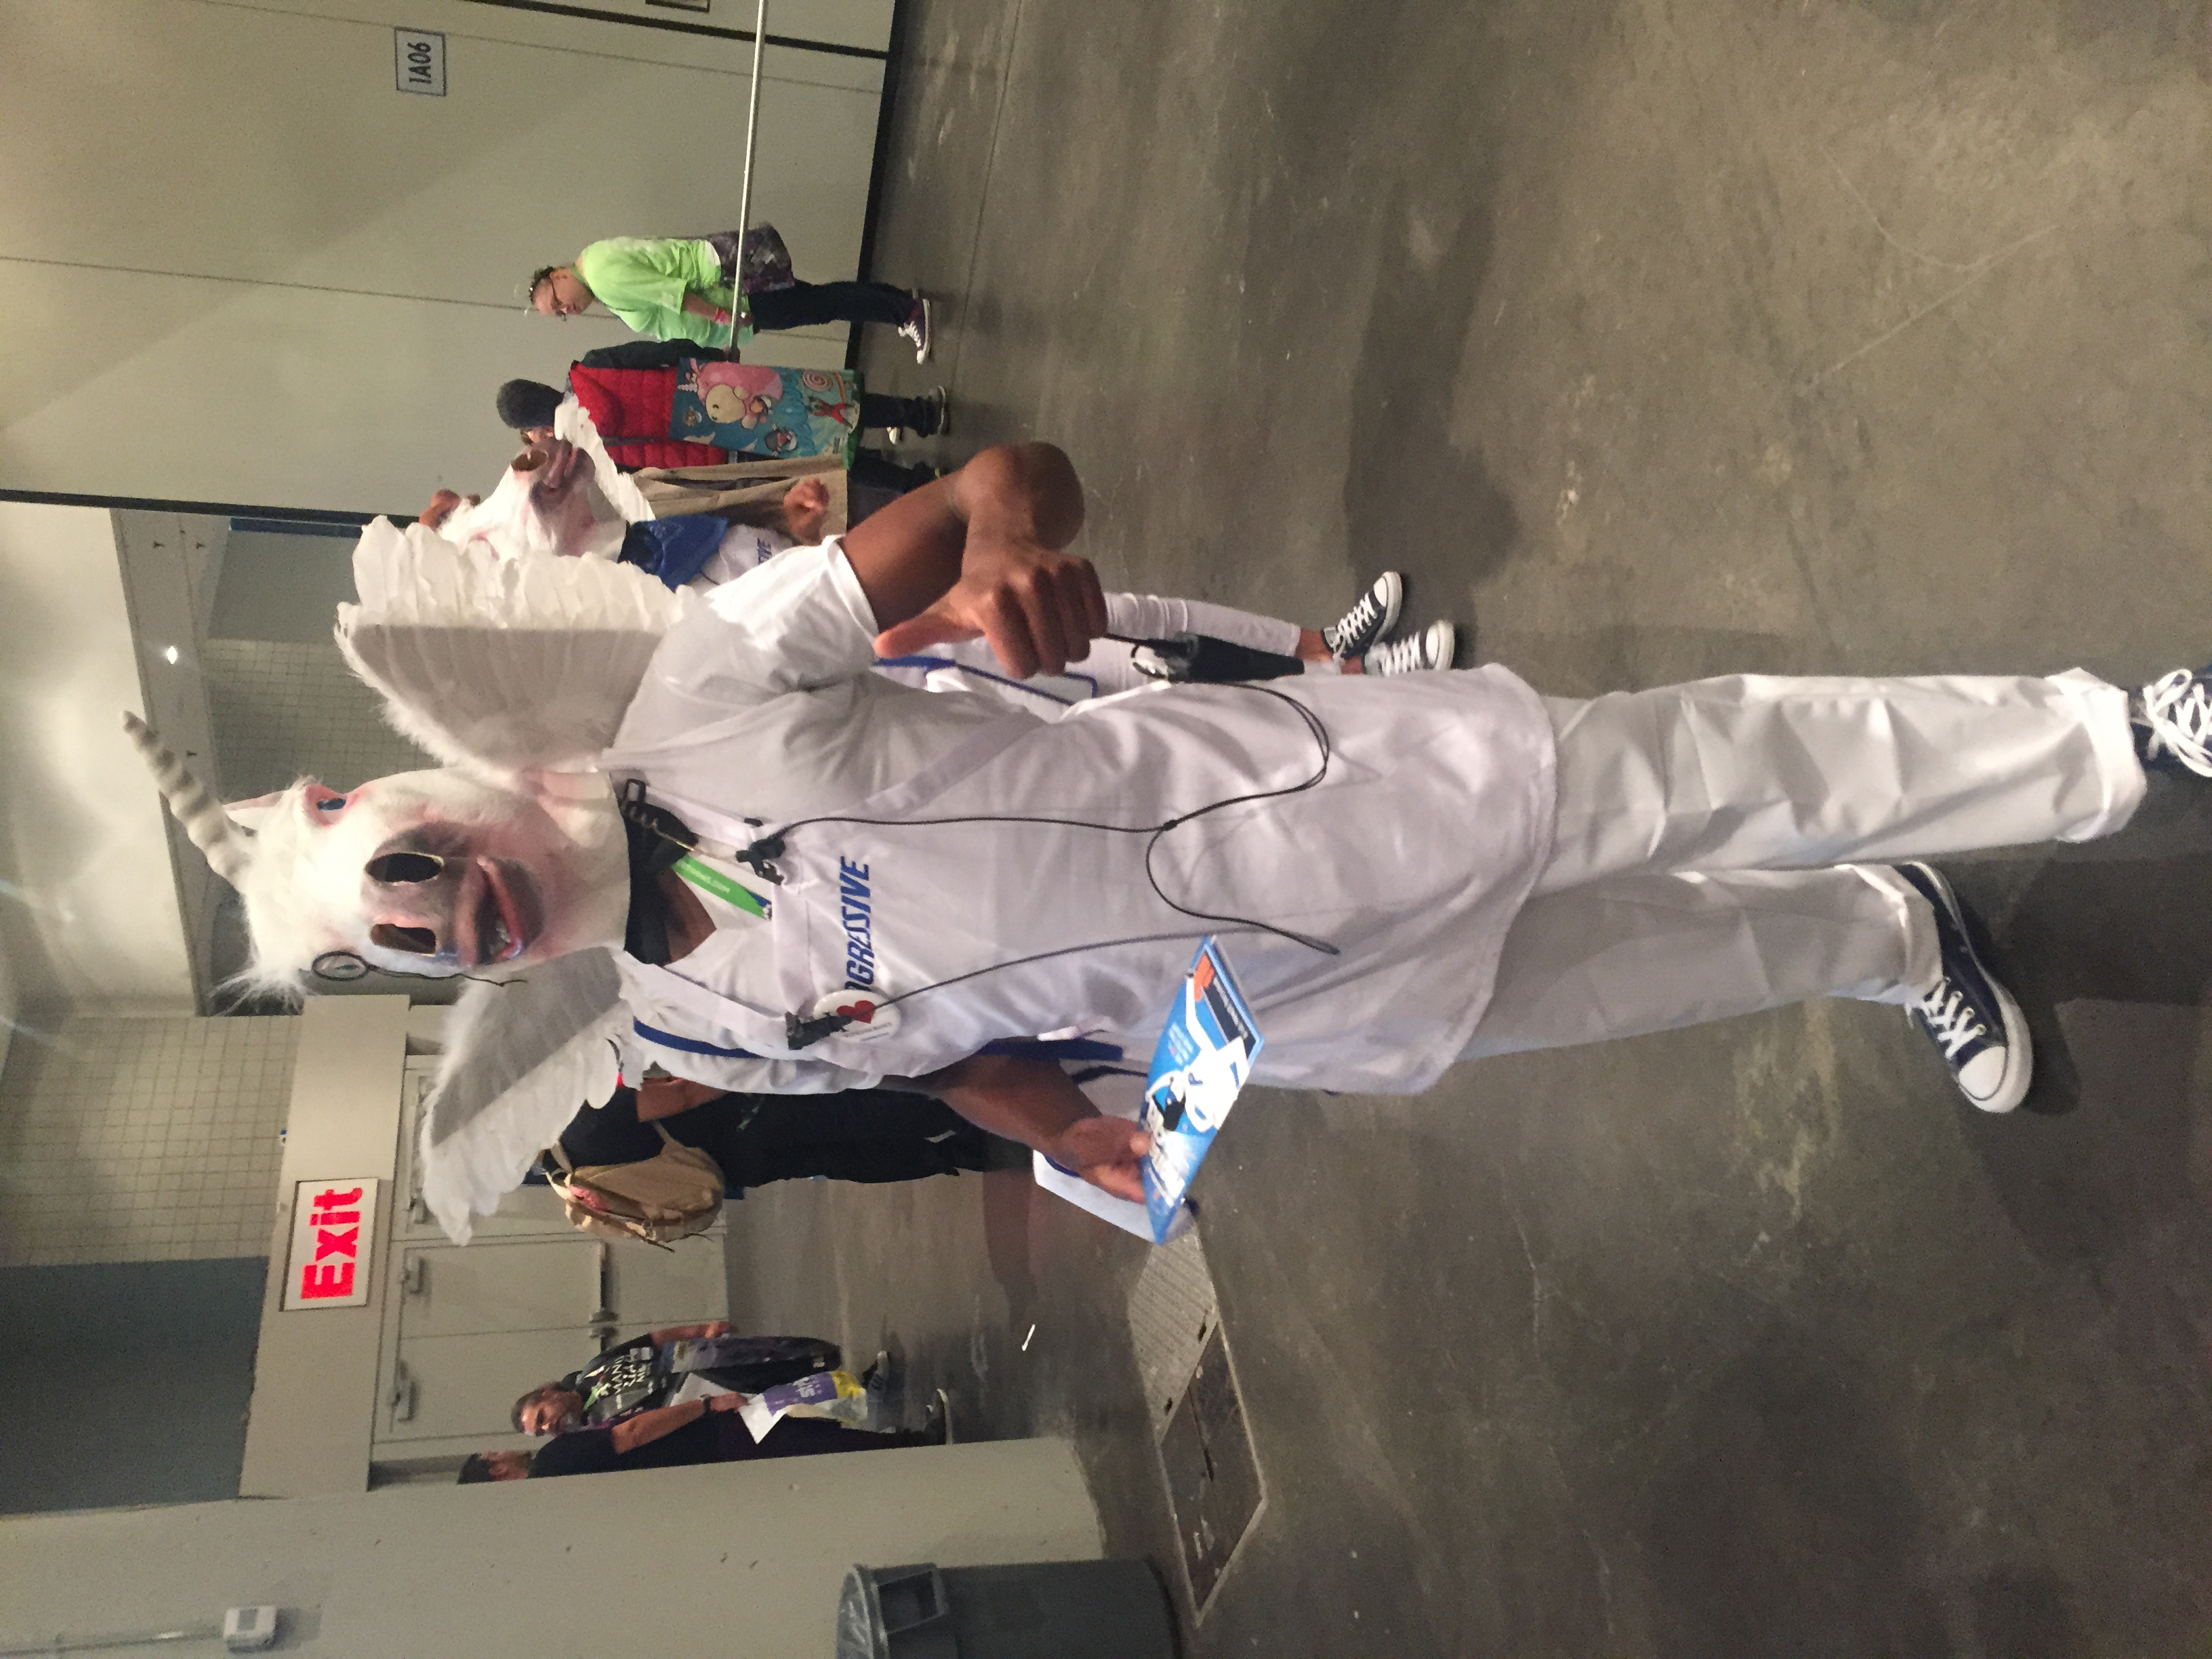 NYCC 2015 Cosplay Gallery | Tuesday Night Movies